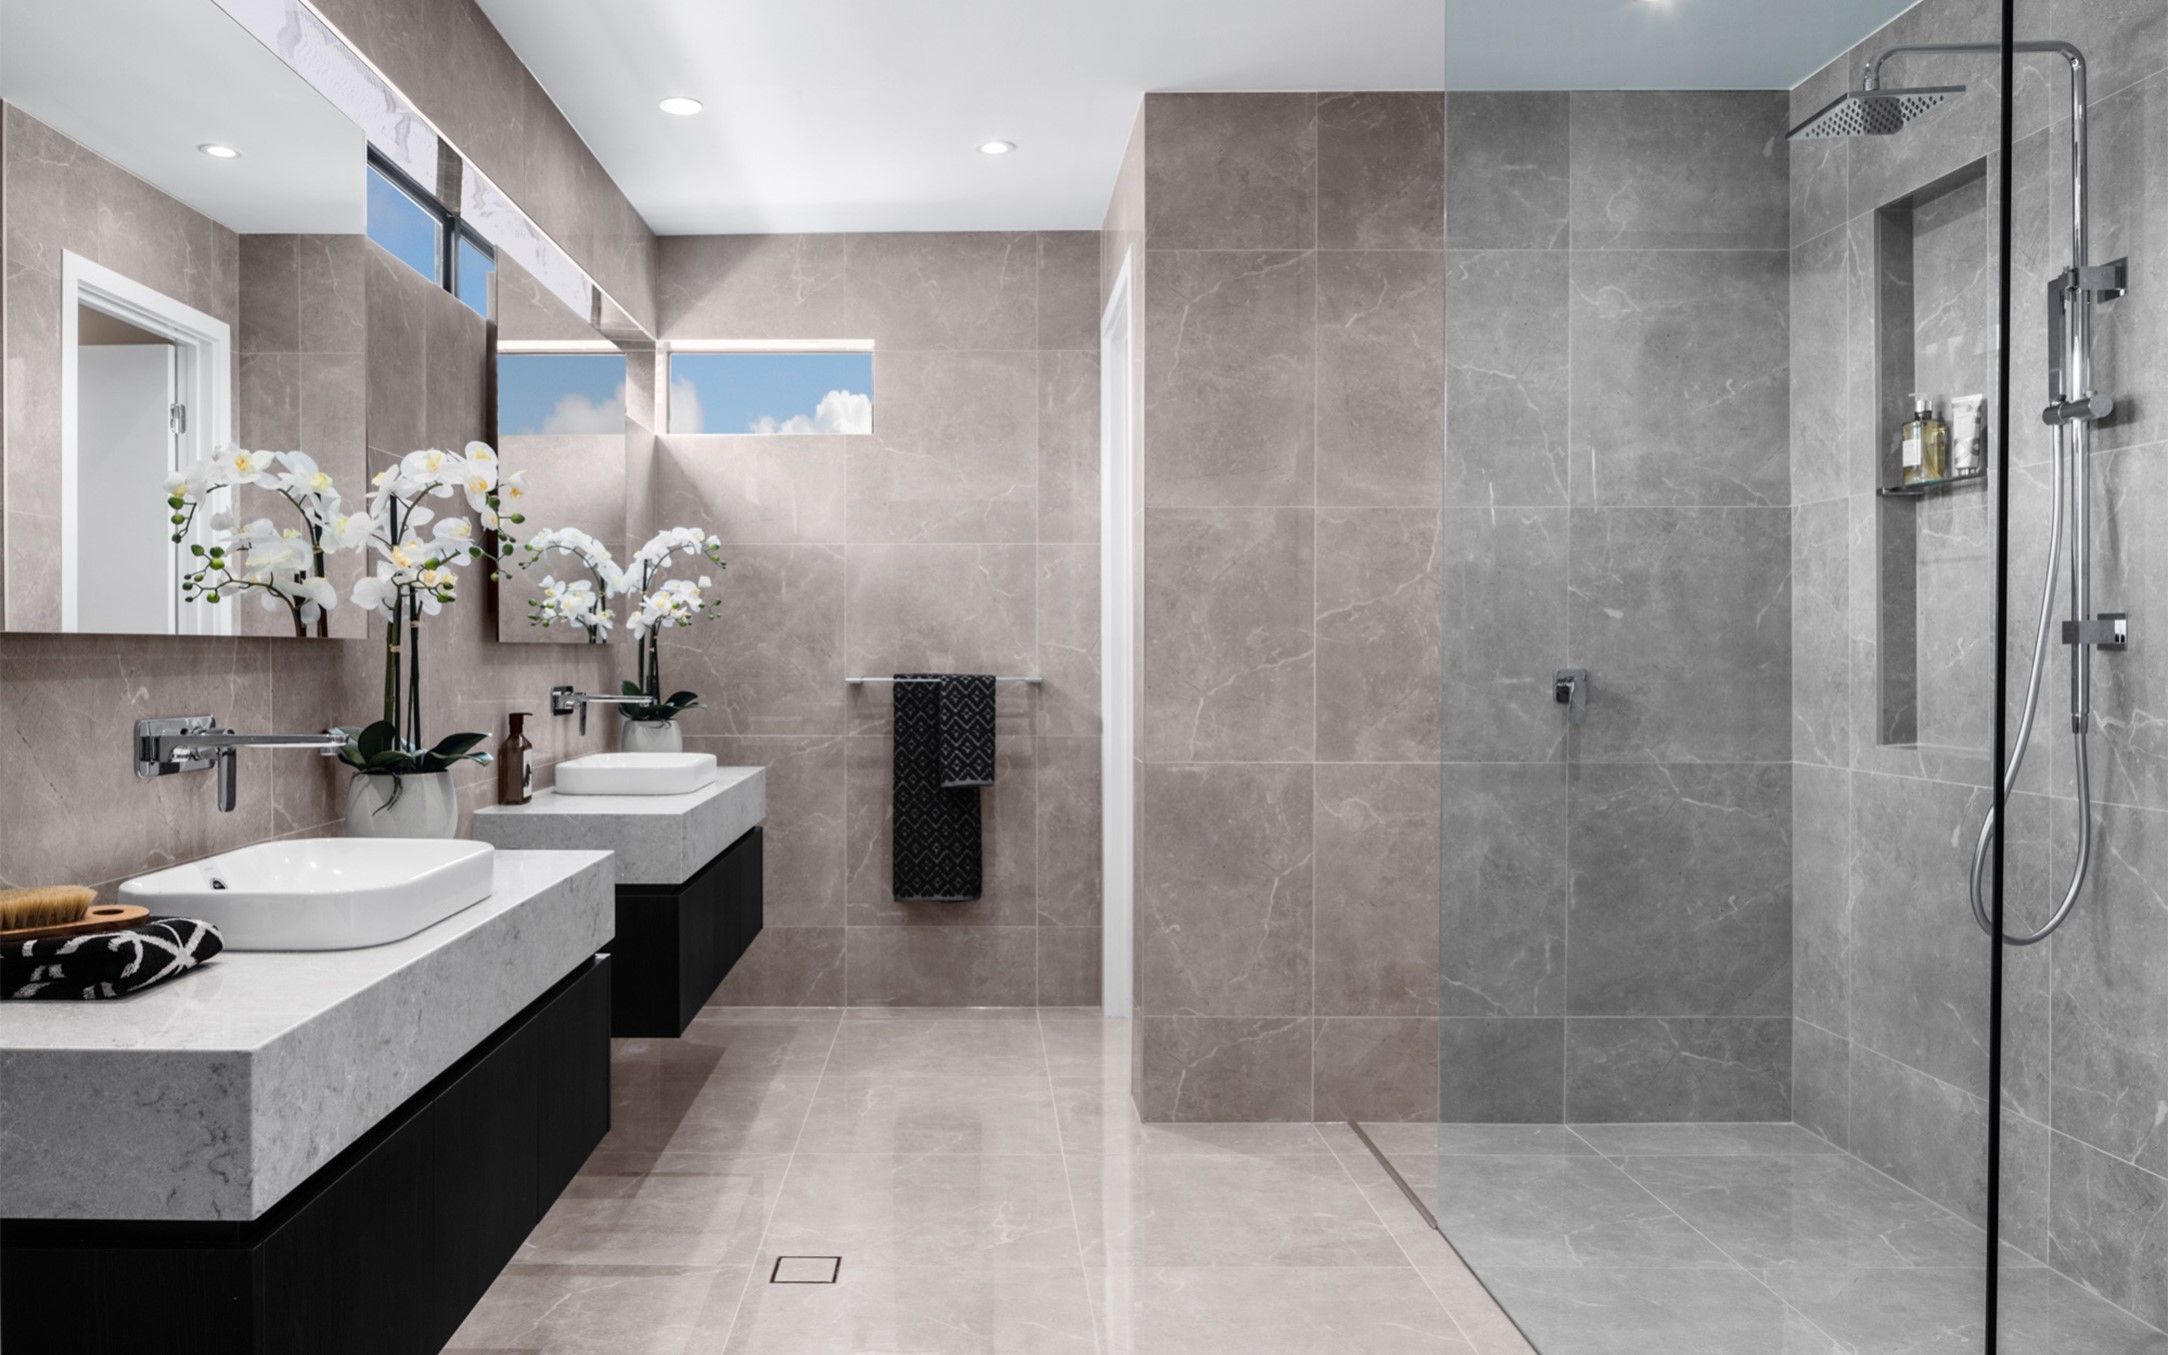 6 reasons why you should hire professionals for bathroom ...